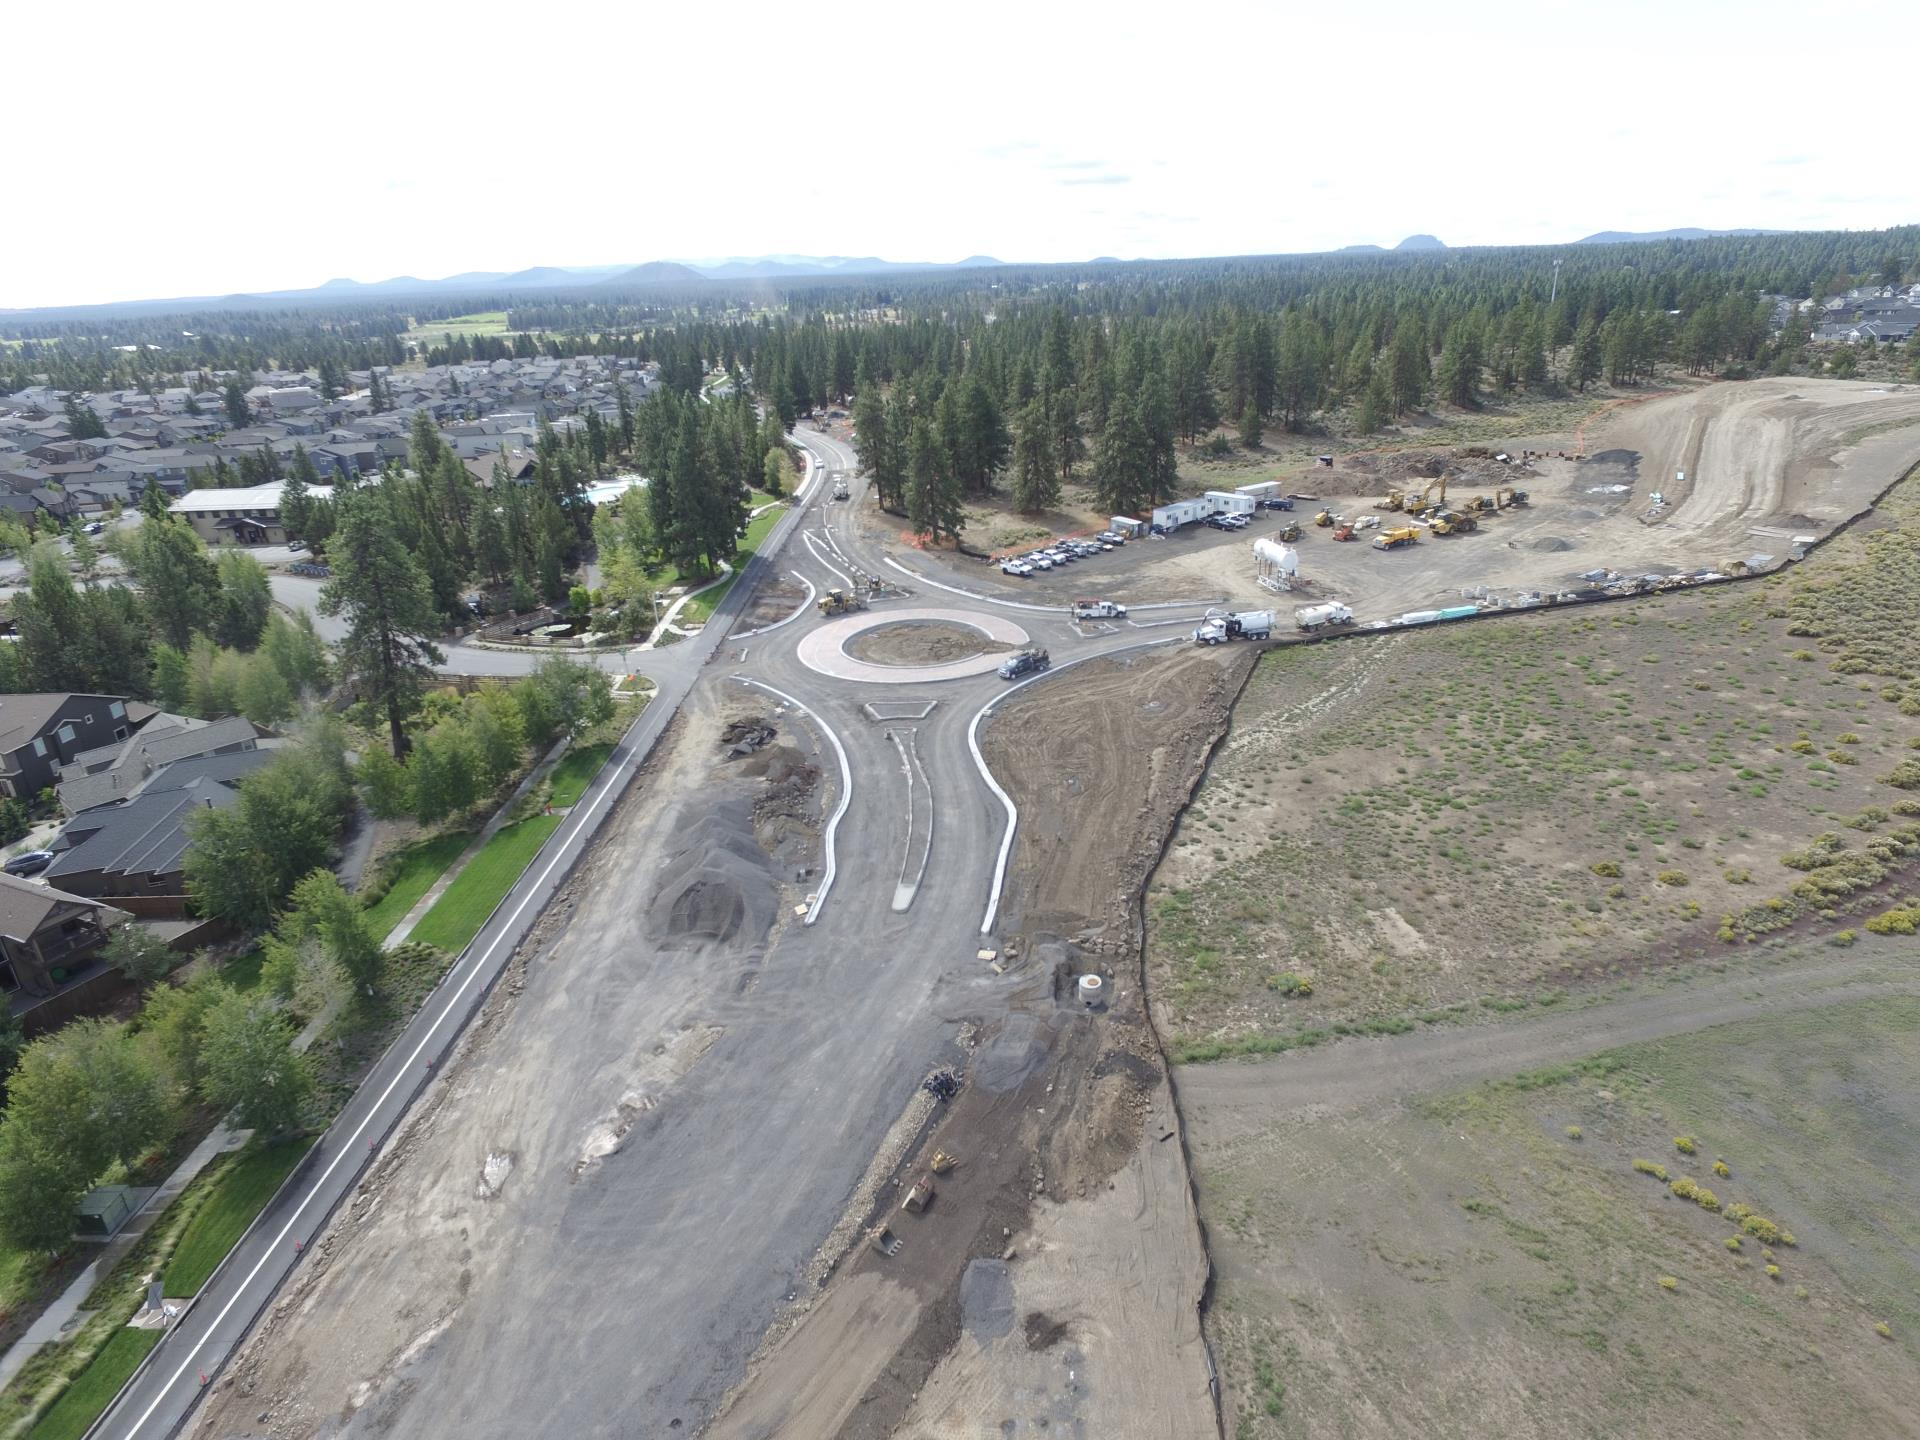 Aerial photo of the 15th Street roundabout construction